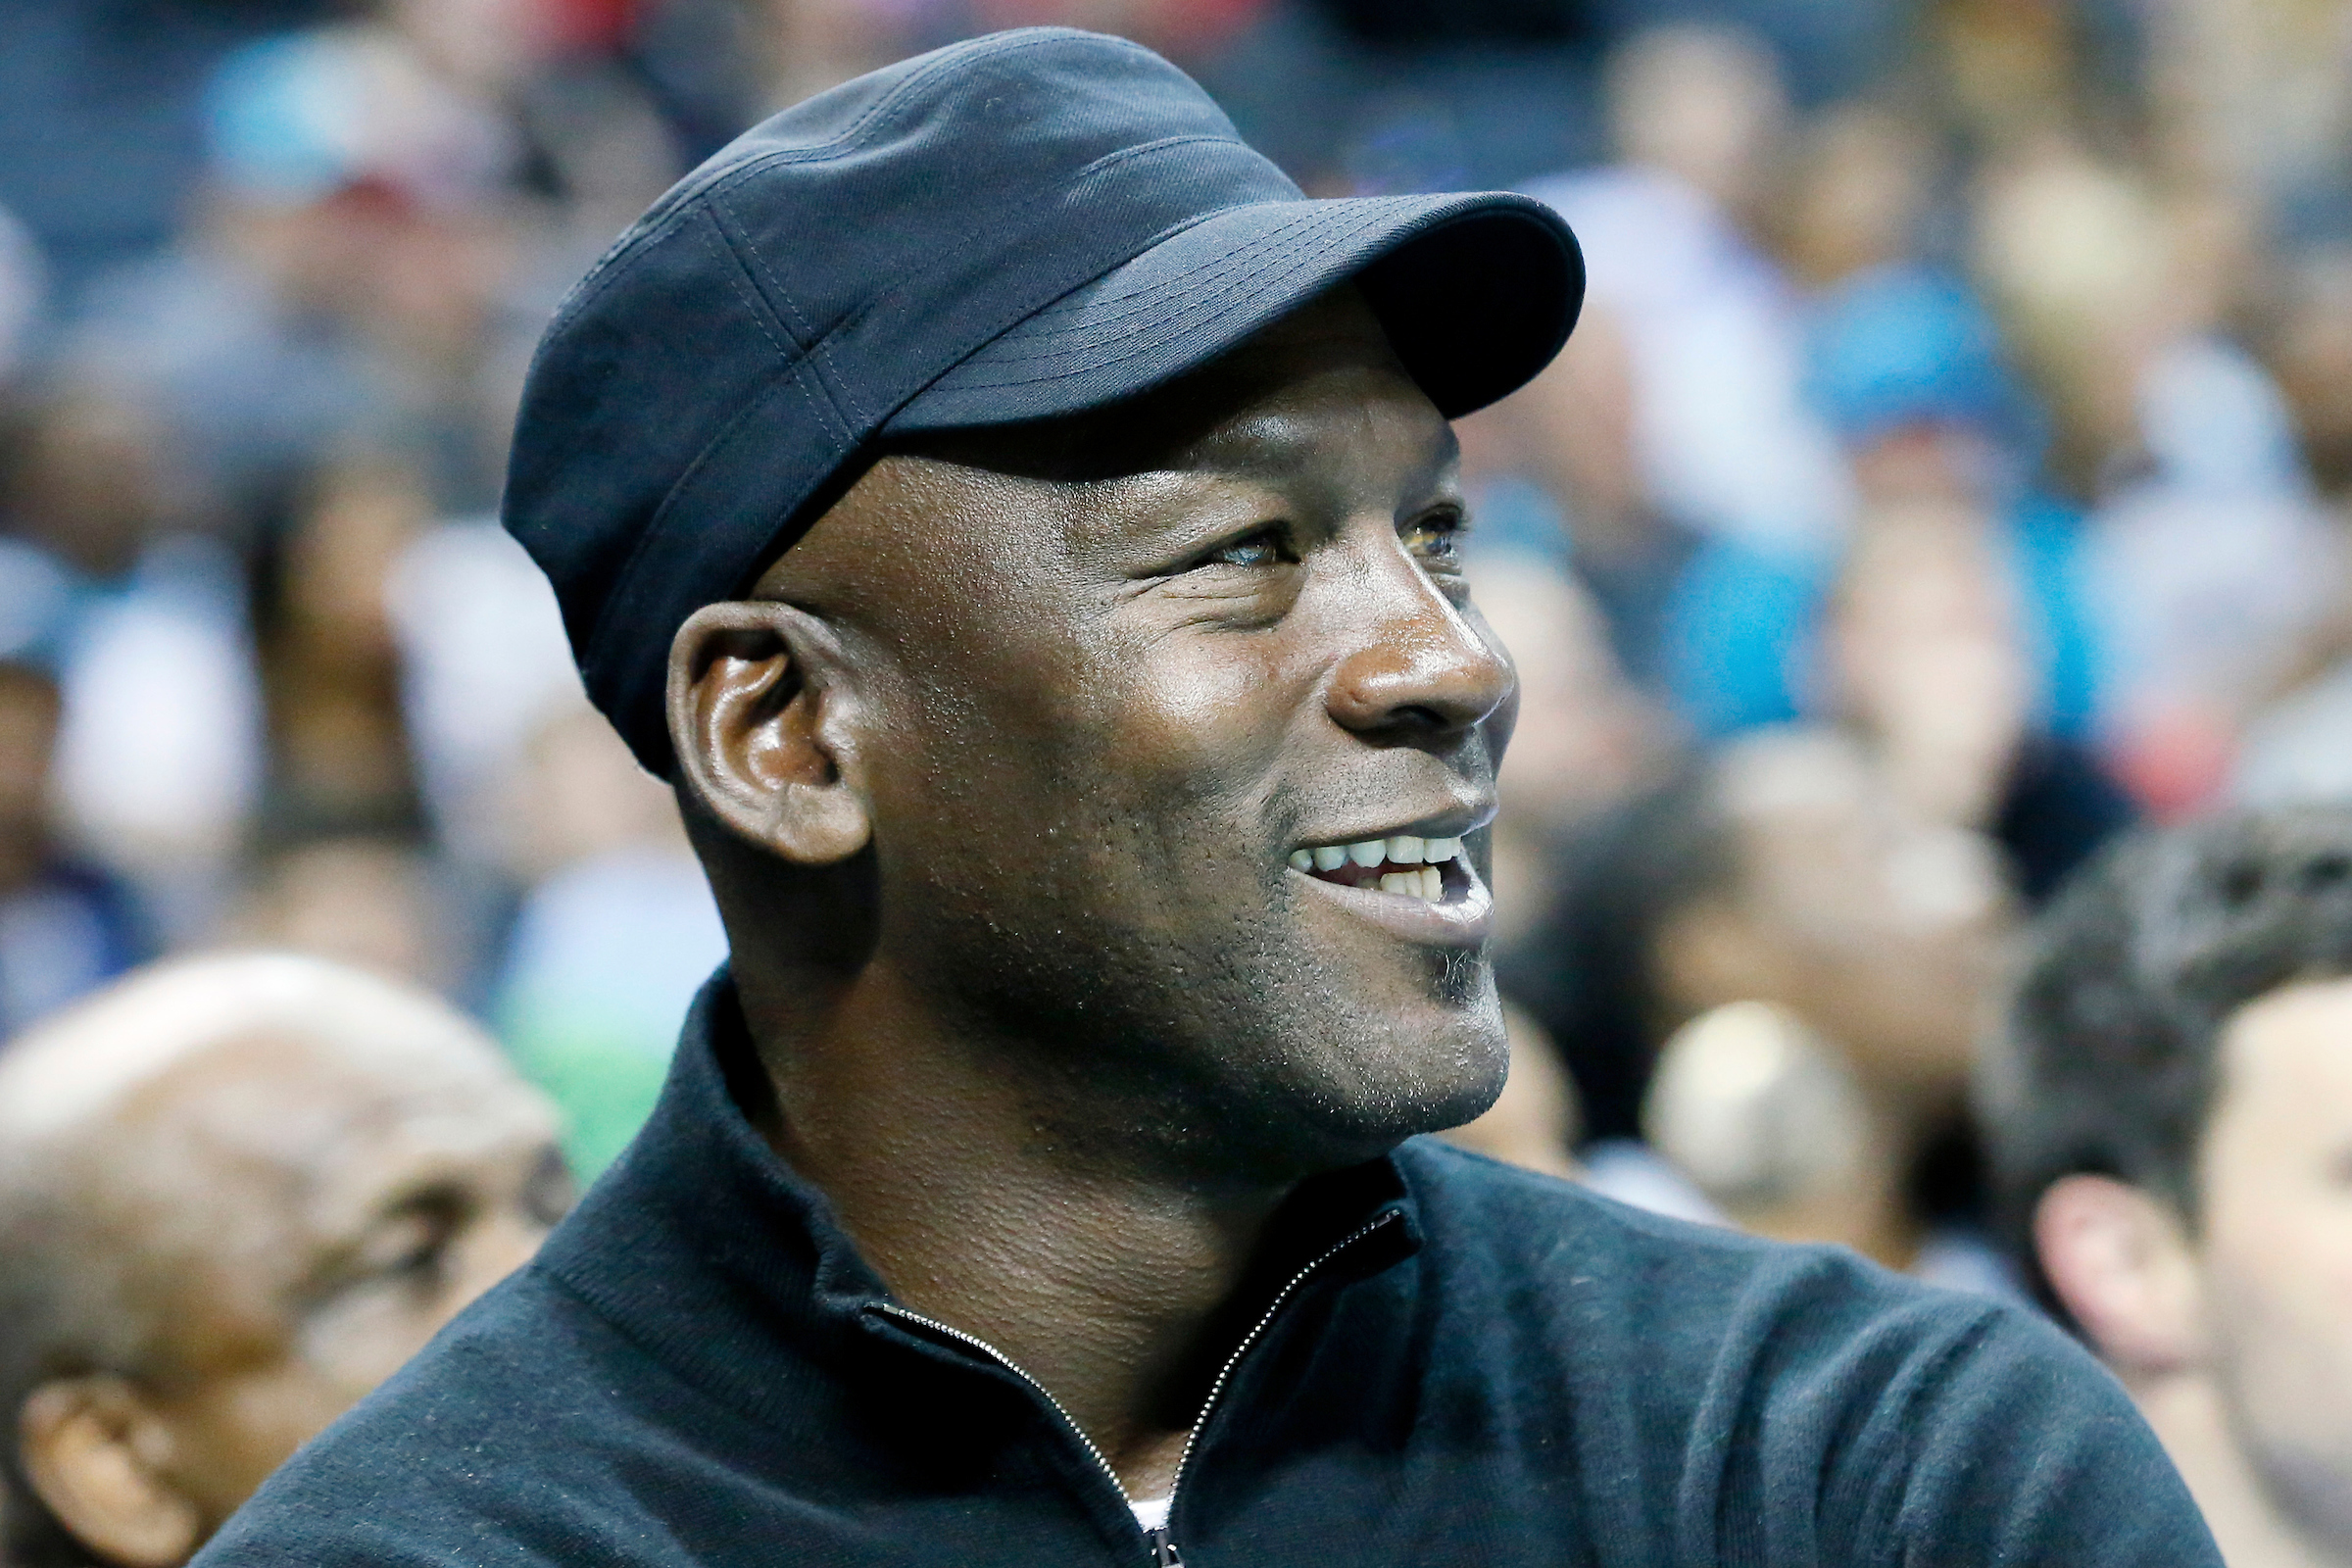 Cité par Donald Trump, Michael Jordan soutient LeBron James